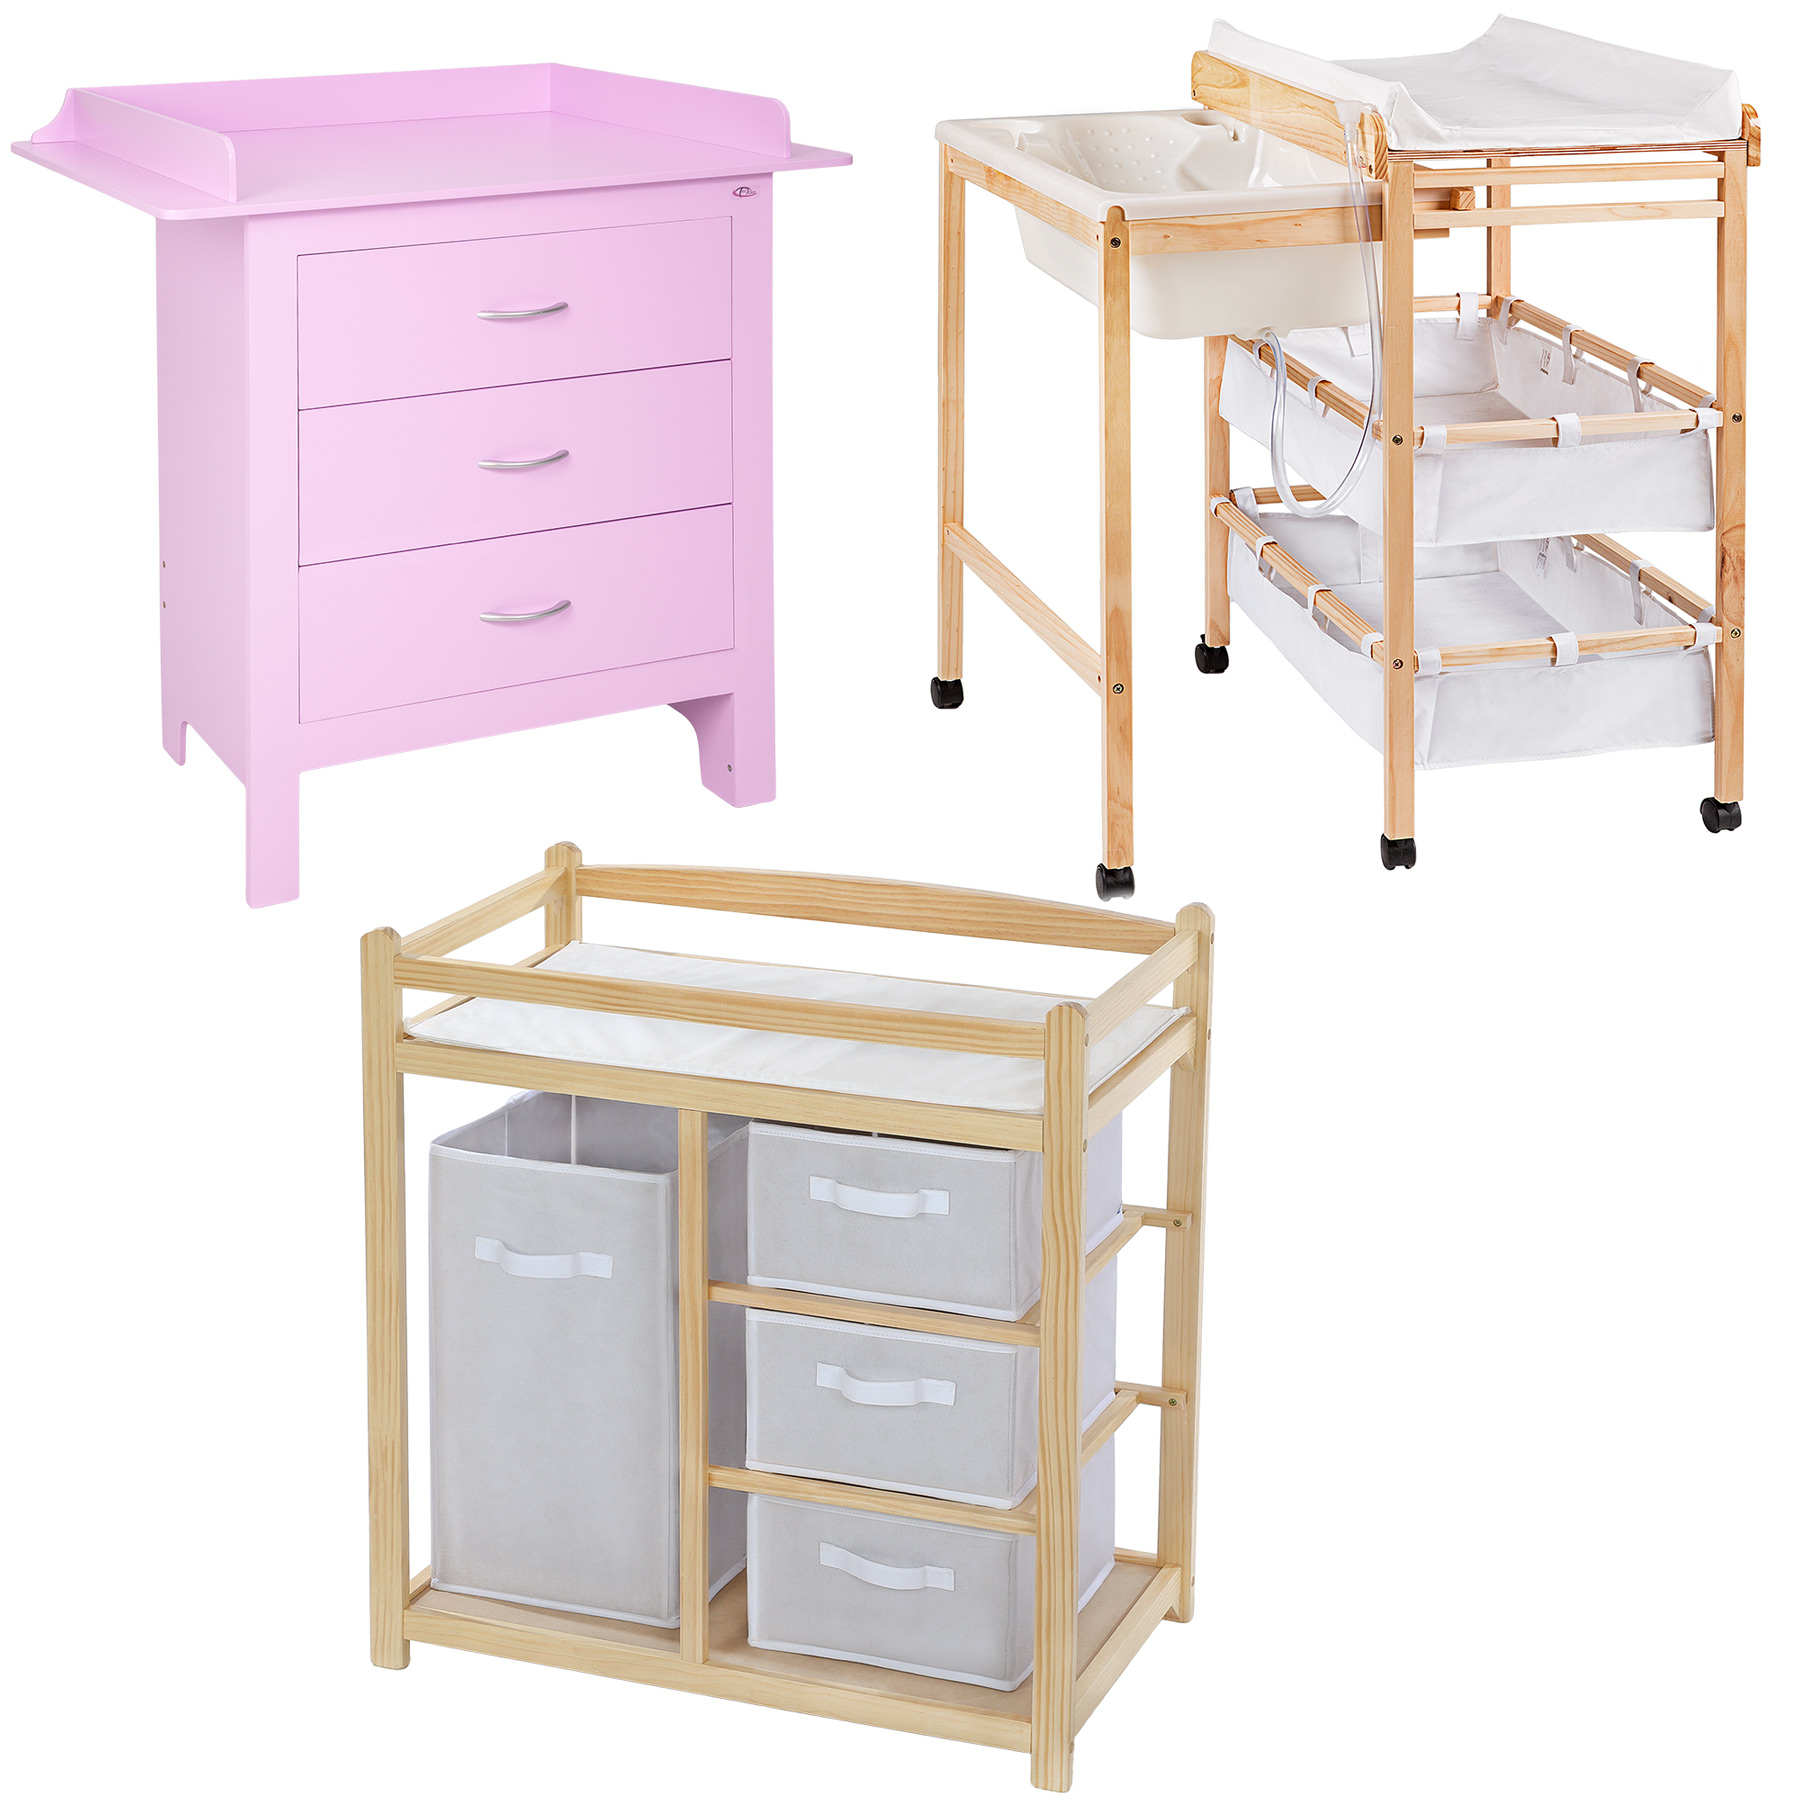 Baby chest of drawers with changing table baby nursery Nursery chest of drawers with changer